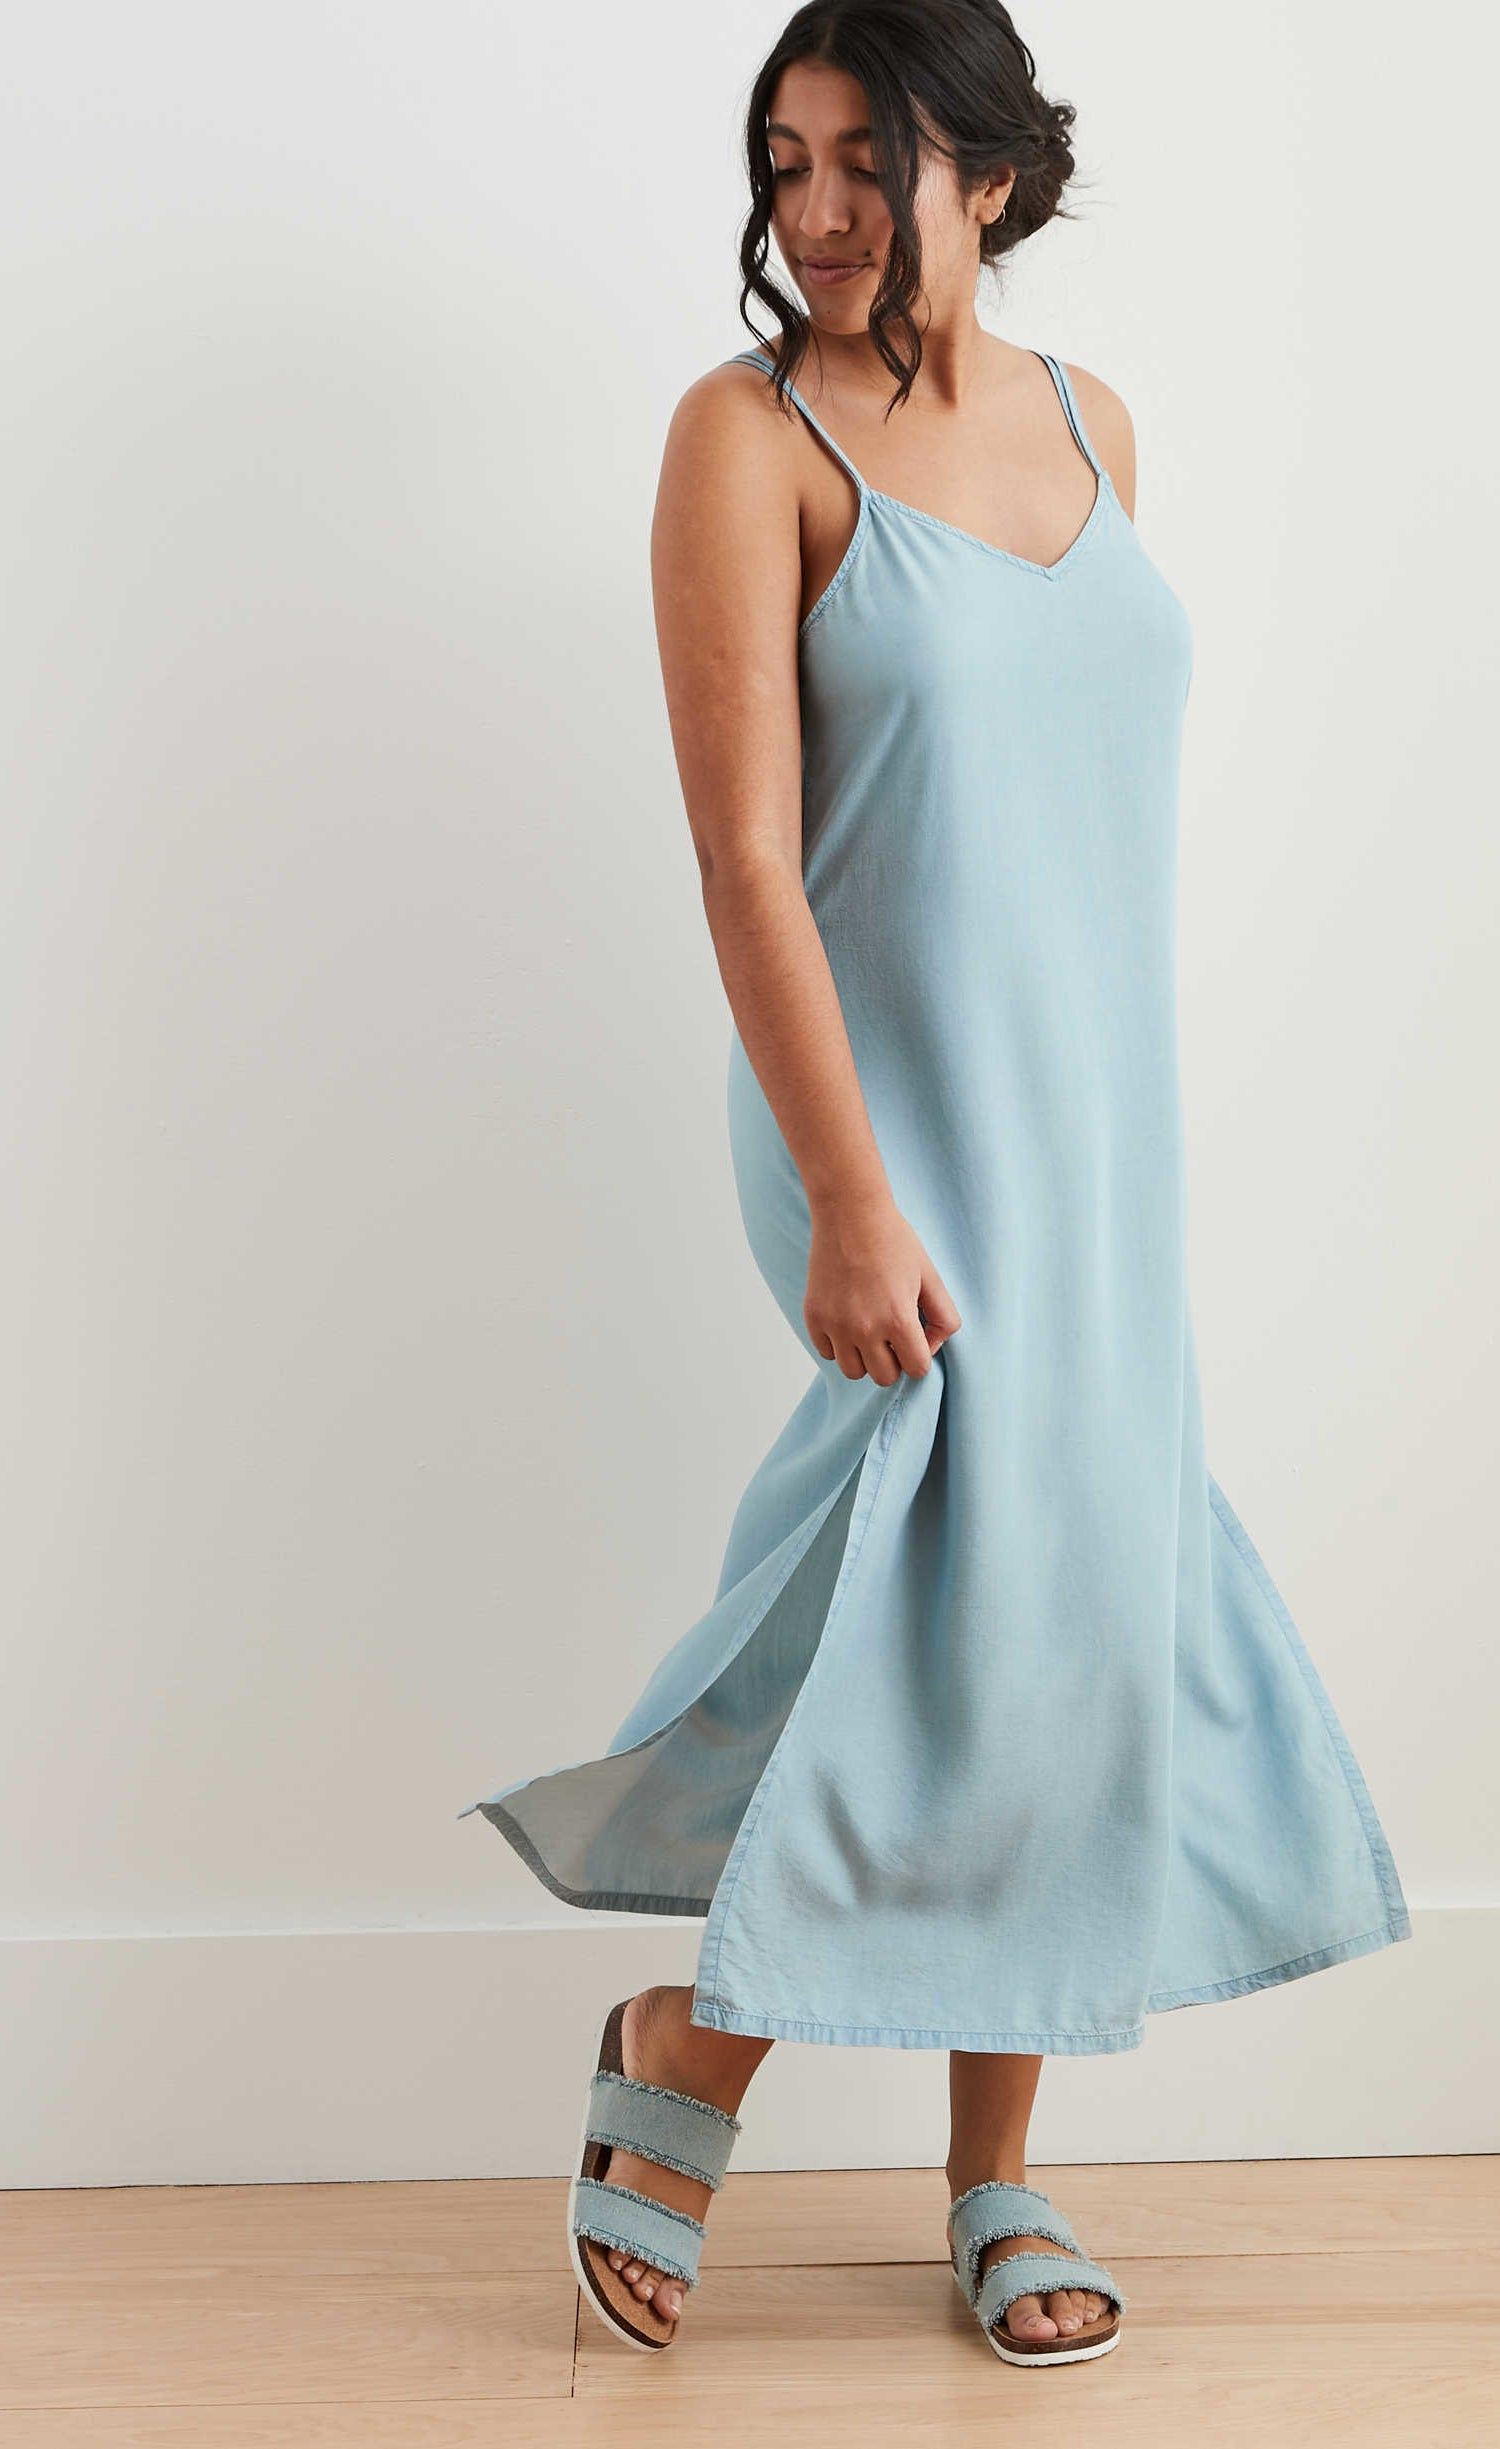 model in midi length chambray slip dress with spaghetti straps and slits up to the knee on either side